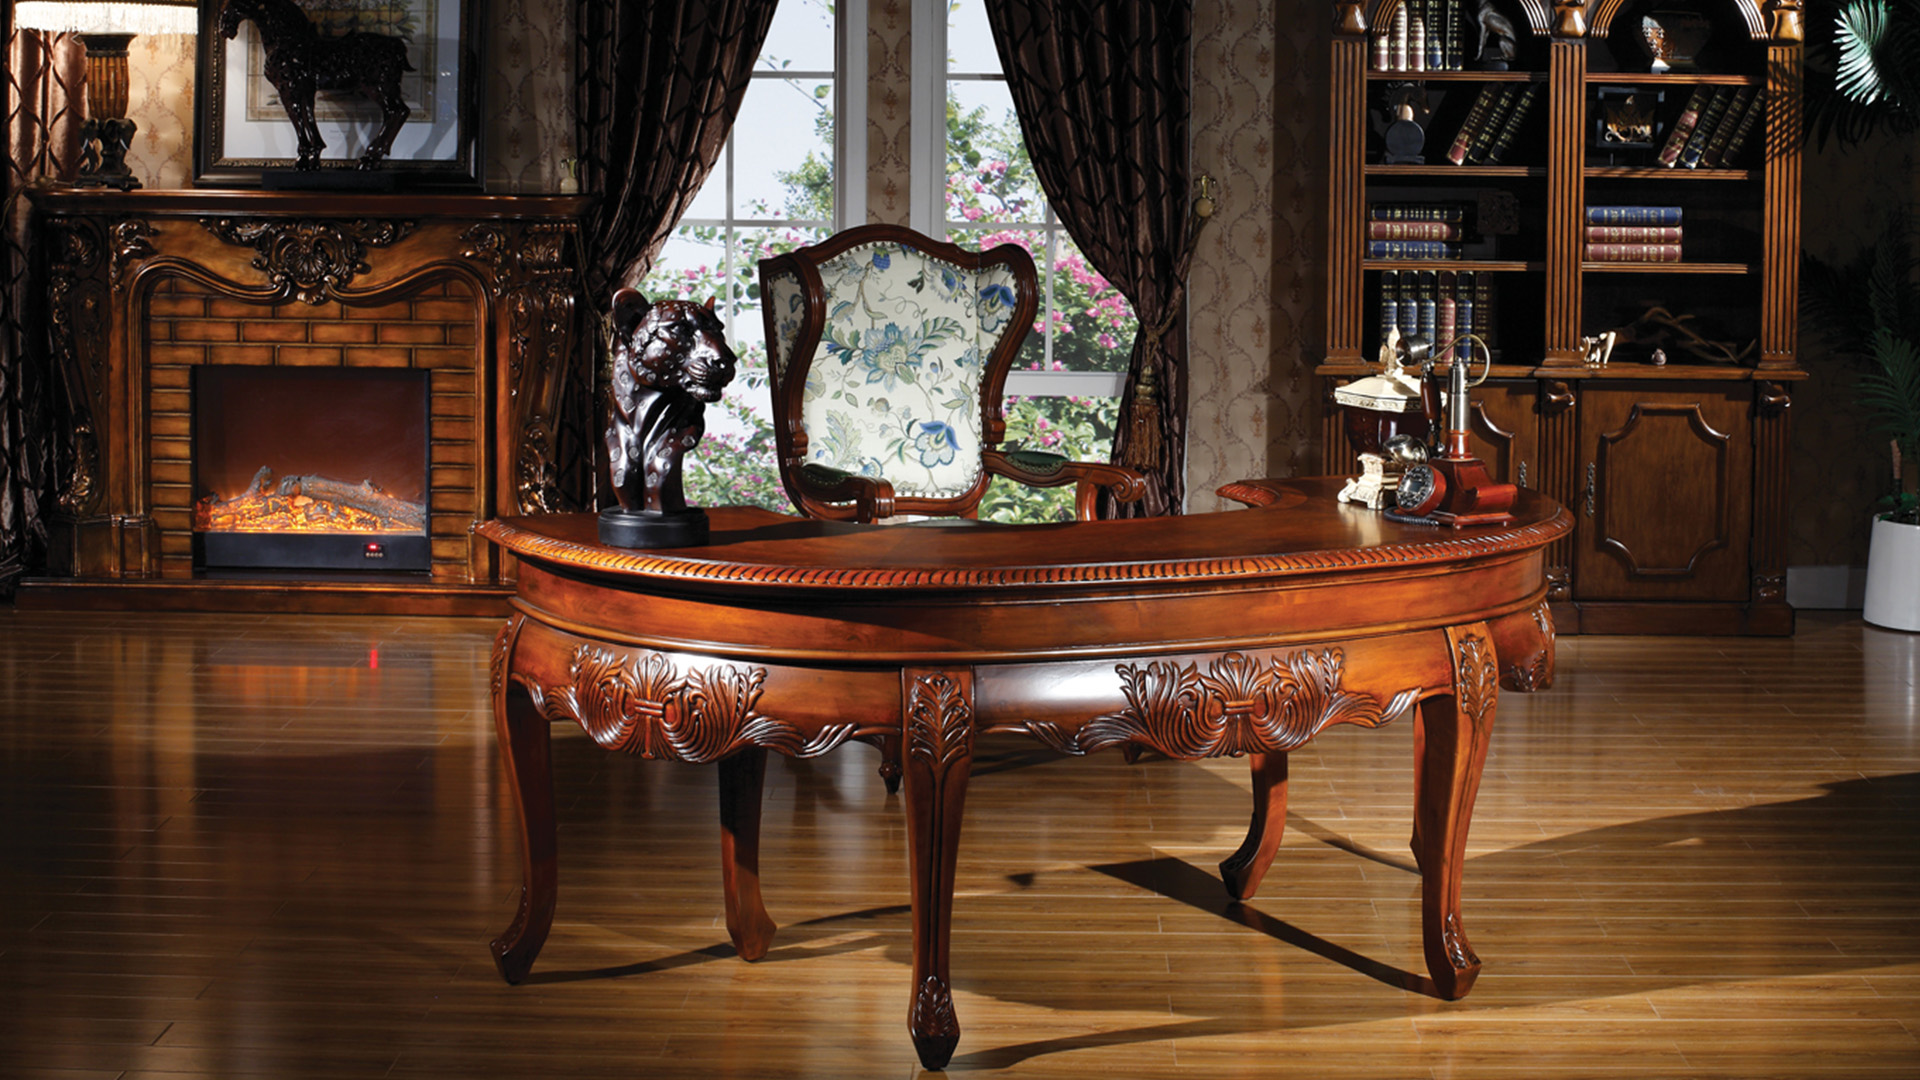 Goodwin furniture Top quality very elegant study desk and chair from China manufacturer GH44